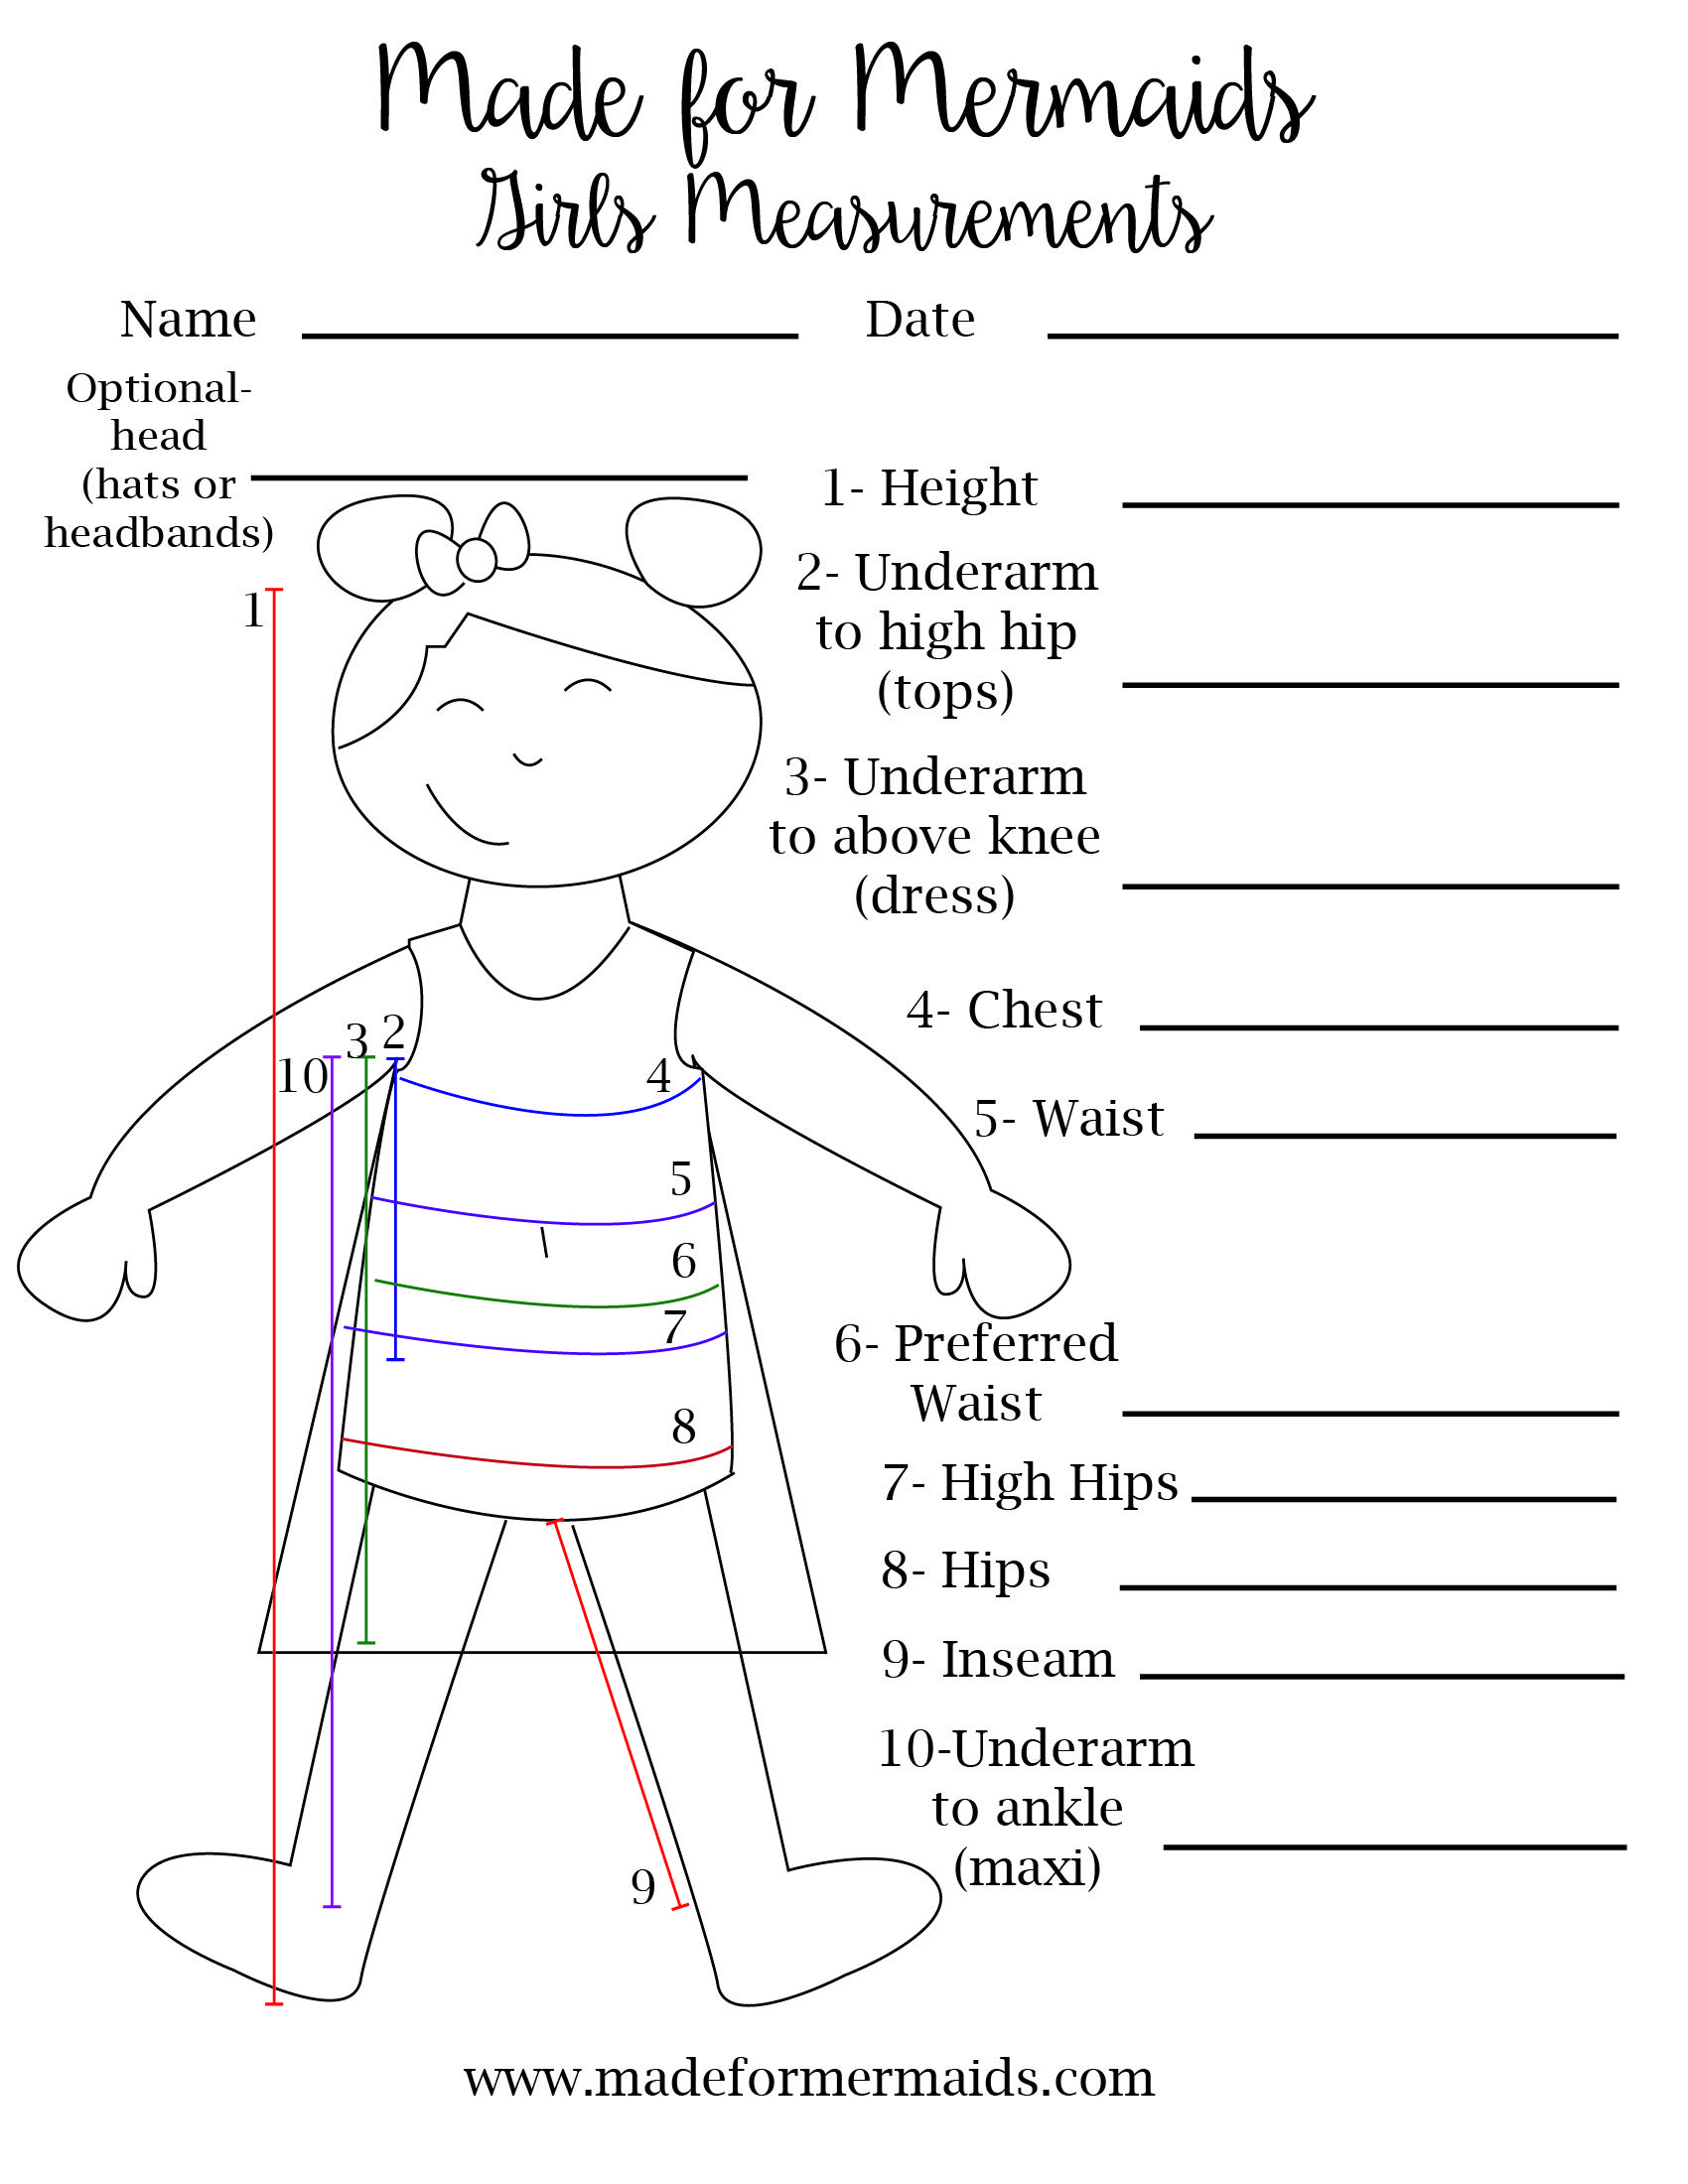 Free Printable Blank Measurement Chart For Boys Girls